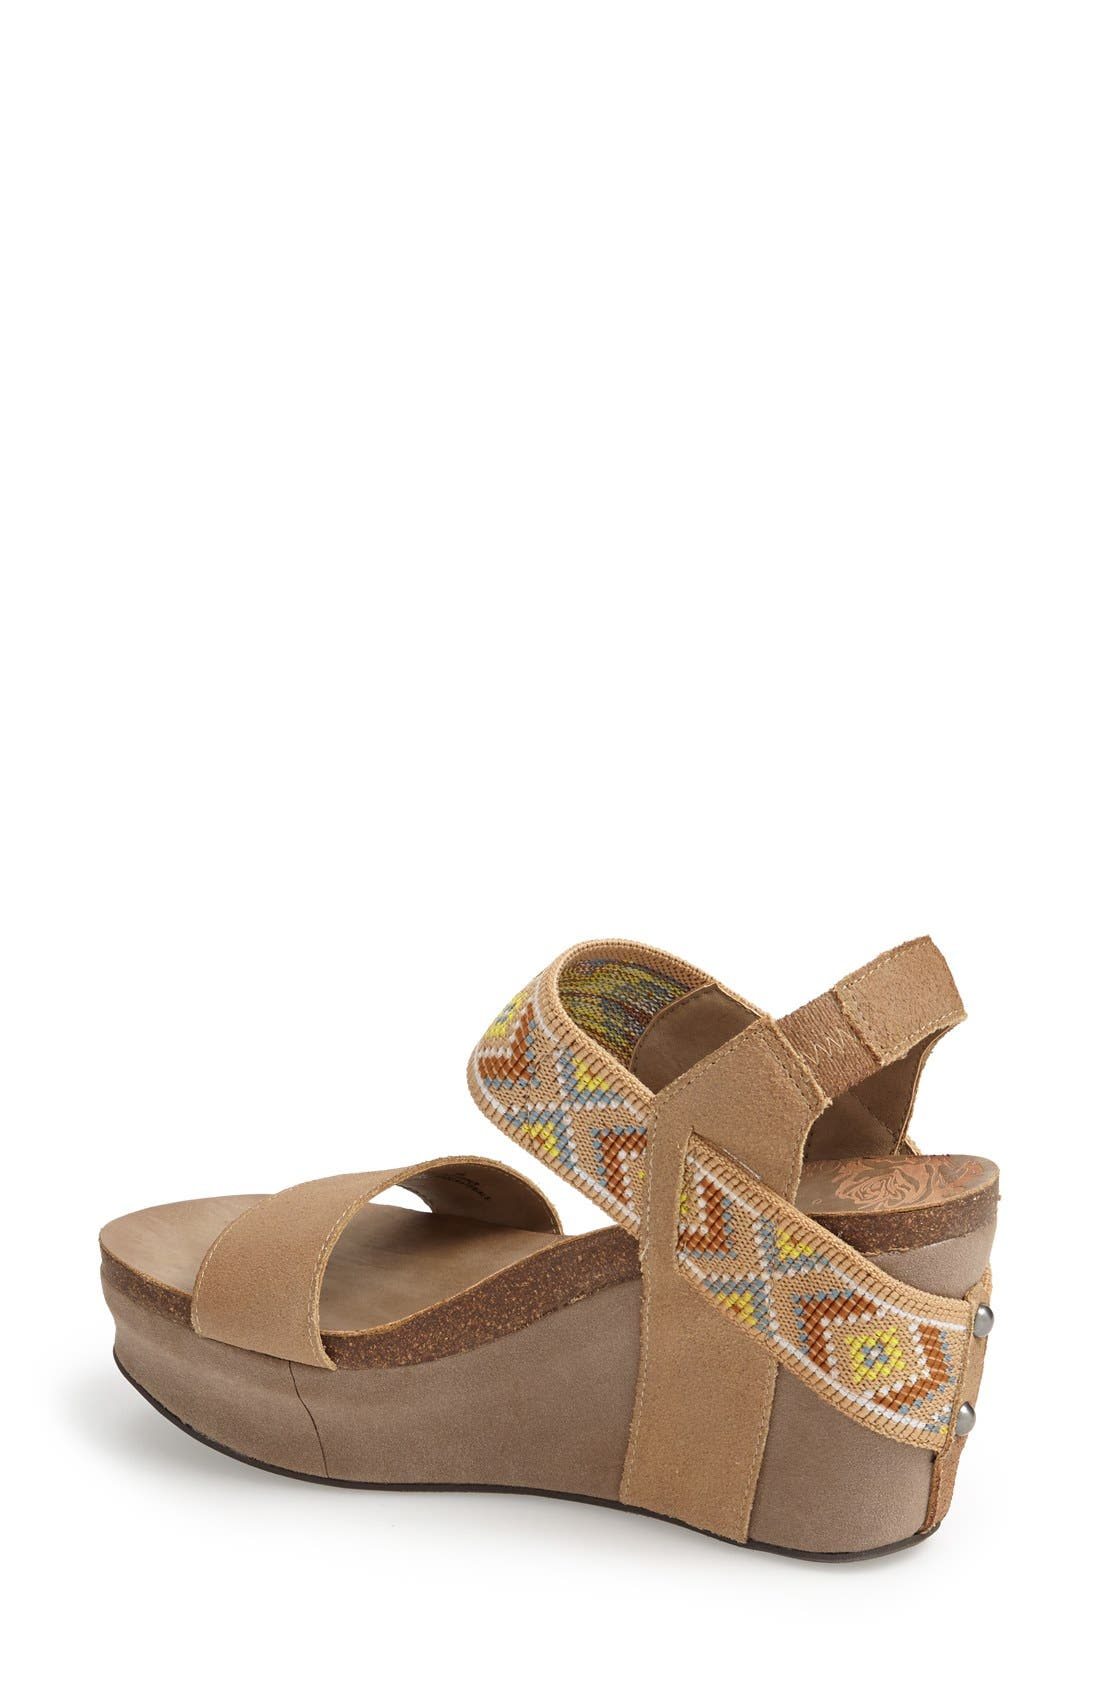 'Bushnell' Wedge Sandal,                             Alternate thumbnail 46, color,